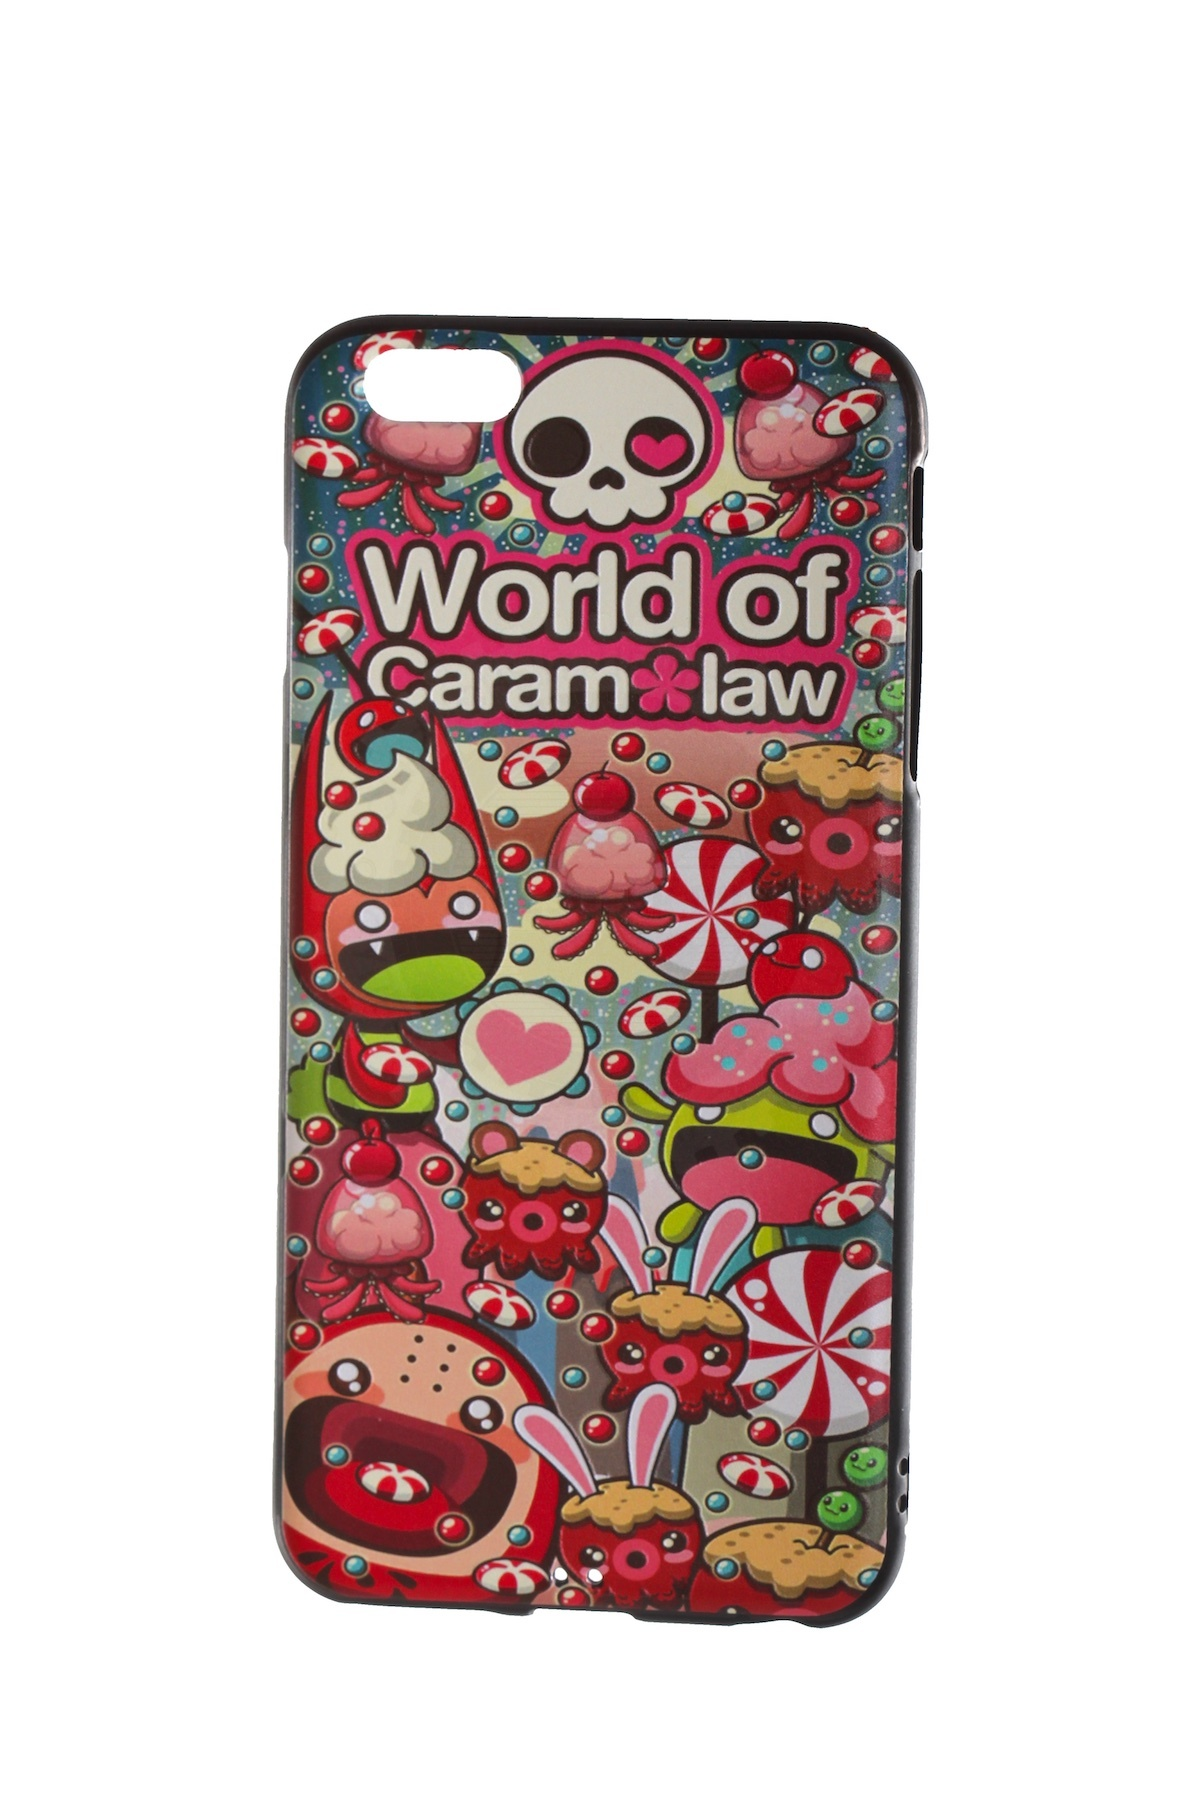 Купить чехол world of caramelaw для iphone 6 plus/6s plus